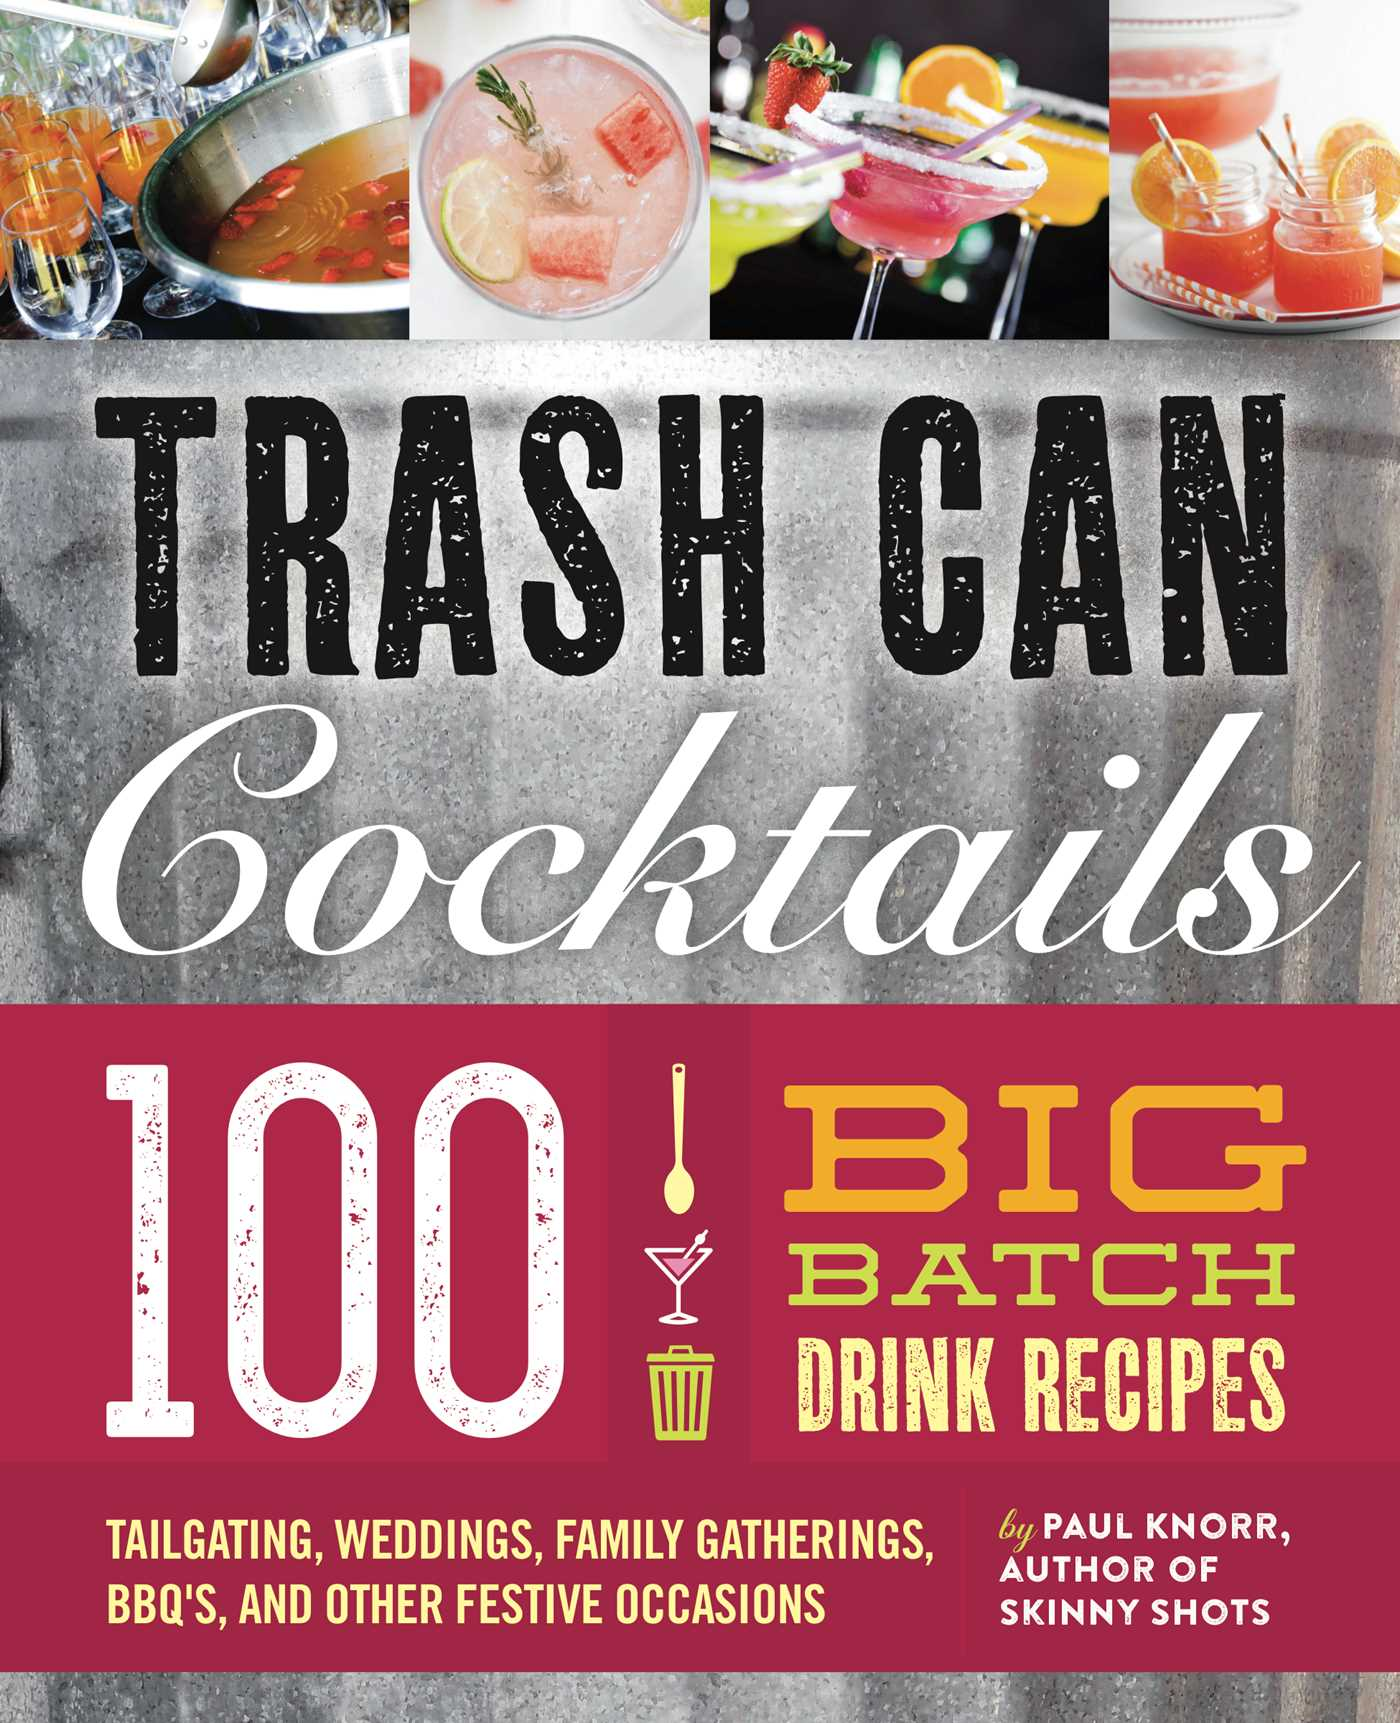 Trash can cocktails 9781604337235 hr